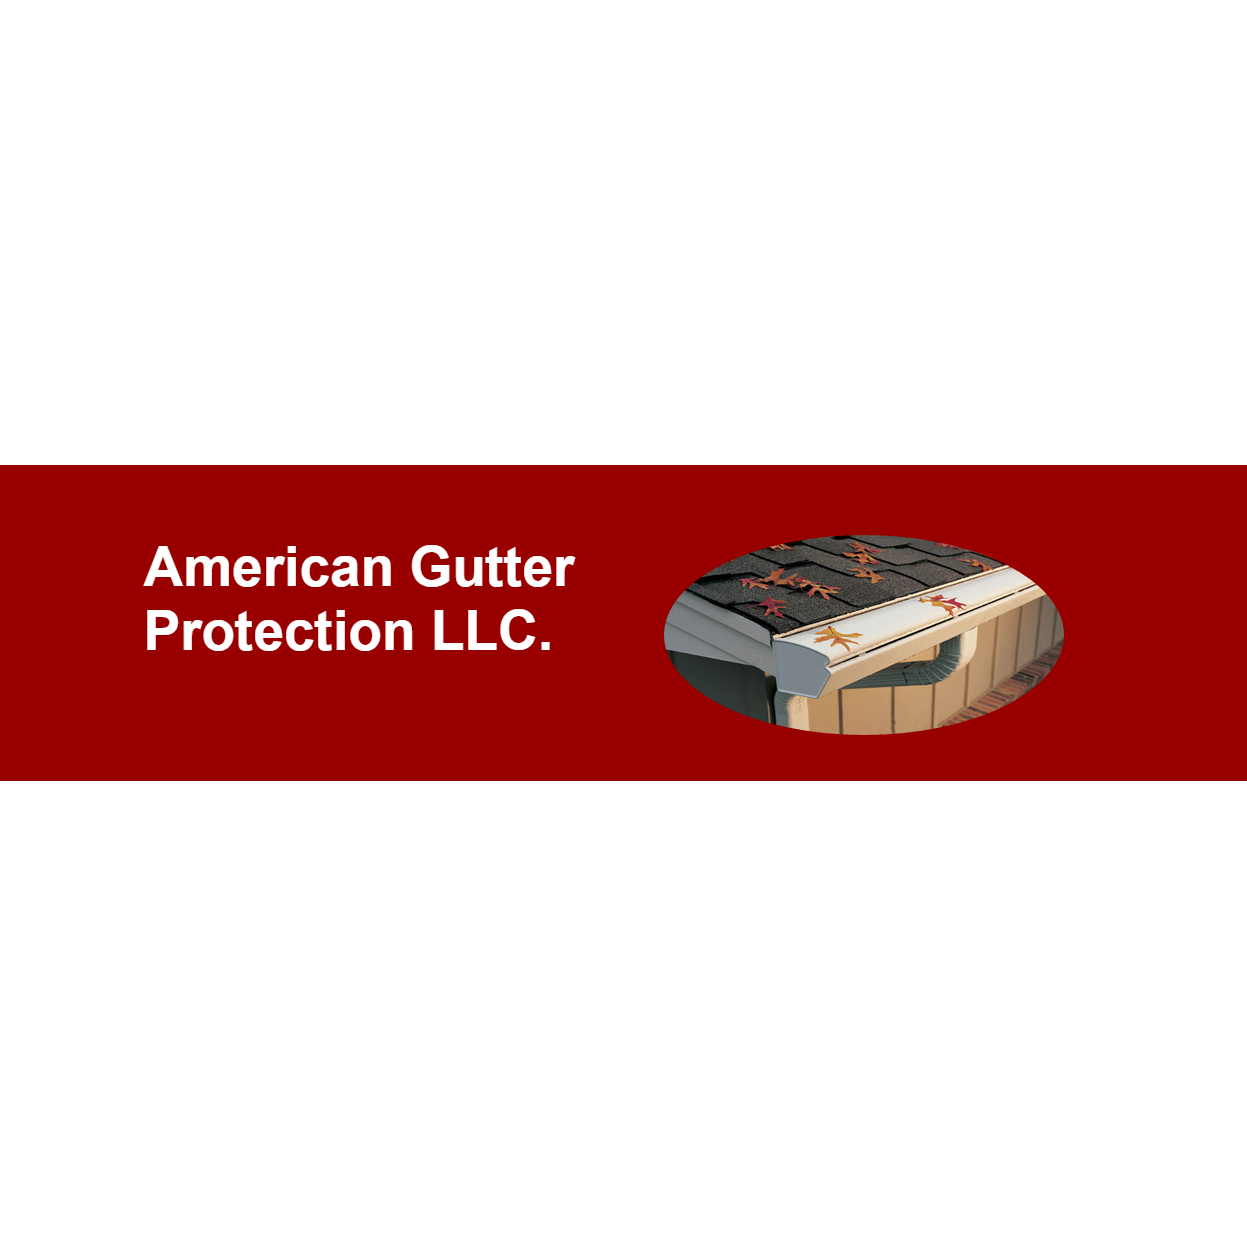 American Gutter Protection LLC